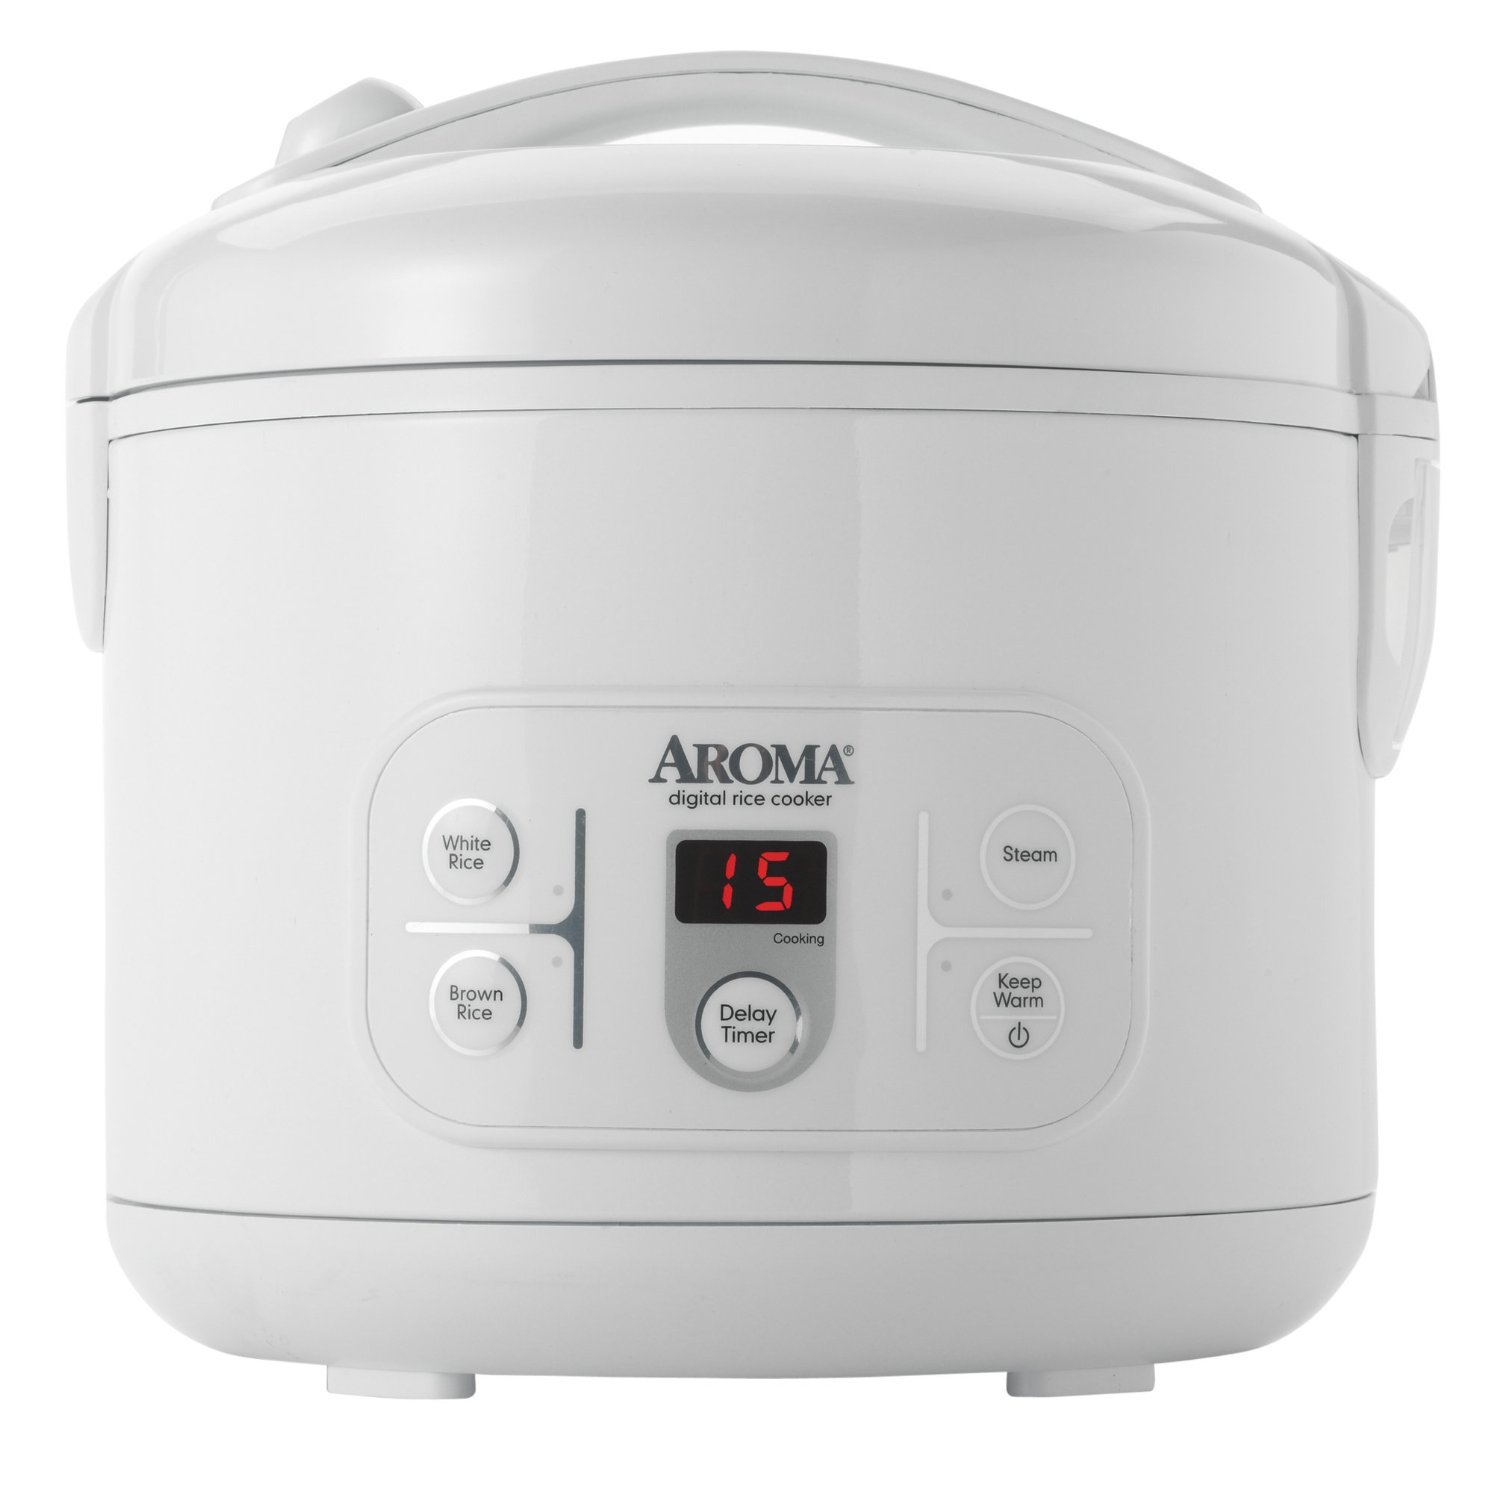 The Best Aroma Rice Cooker (View 2 of 10)